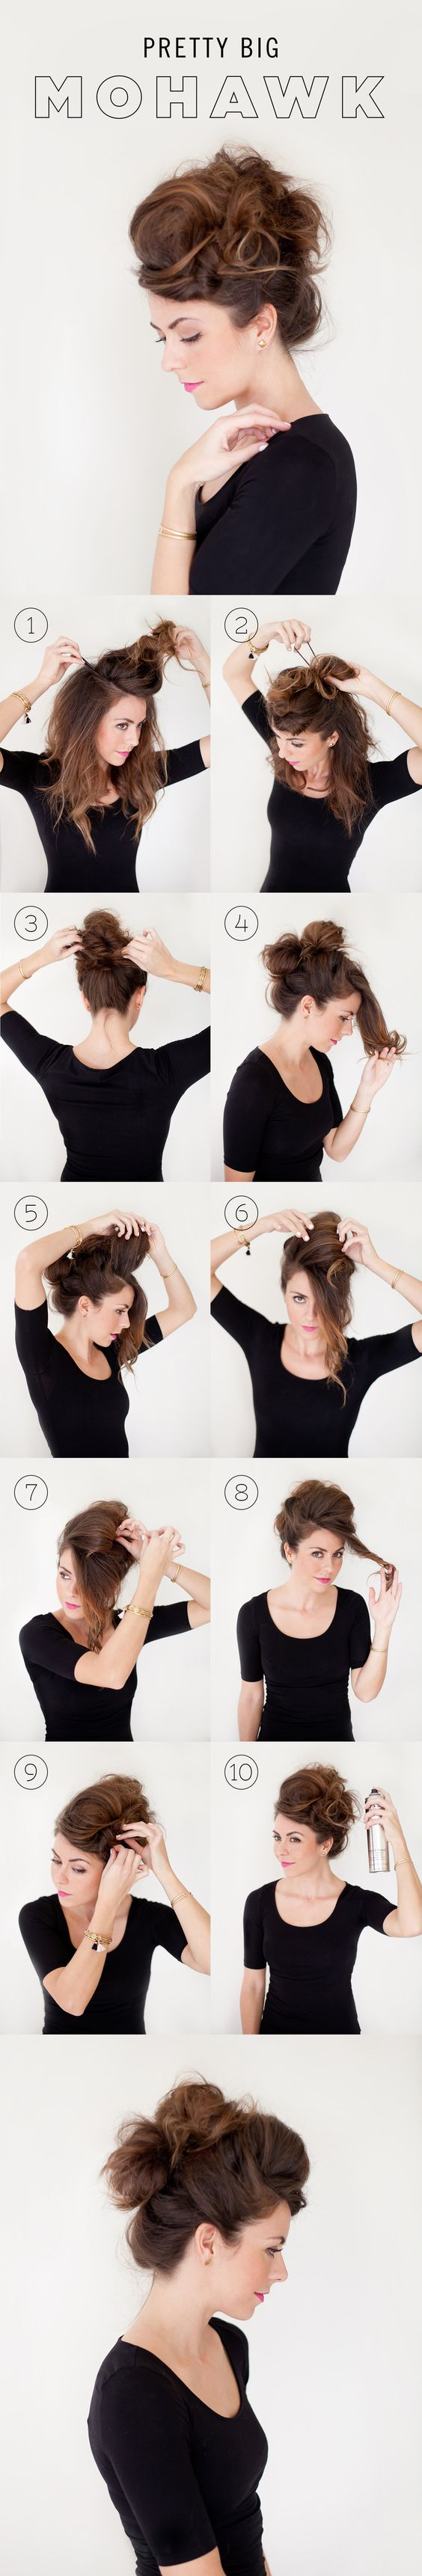 9 Easy DIY Hairstyles Tutorials For Stunning Looks